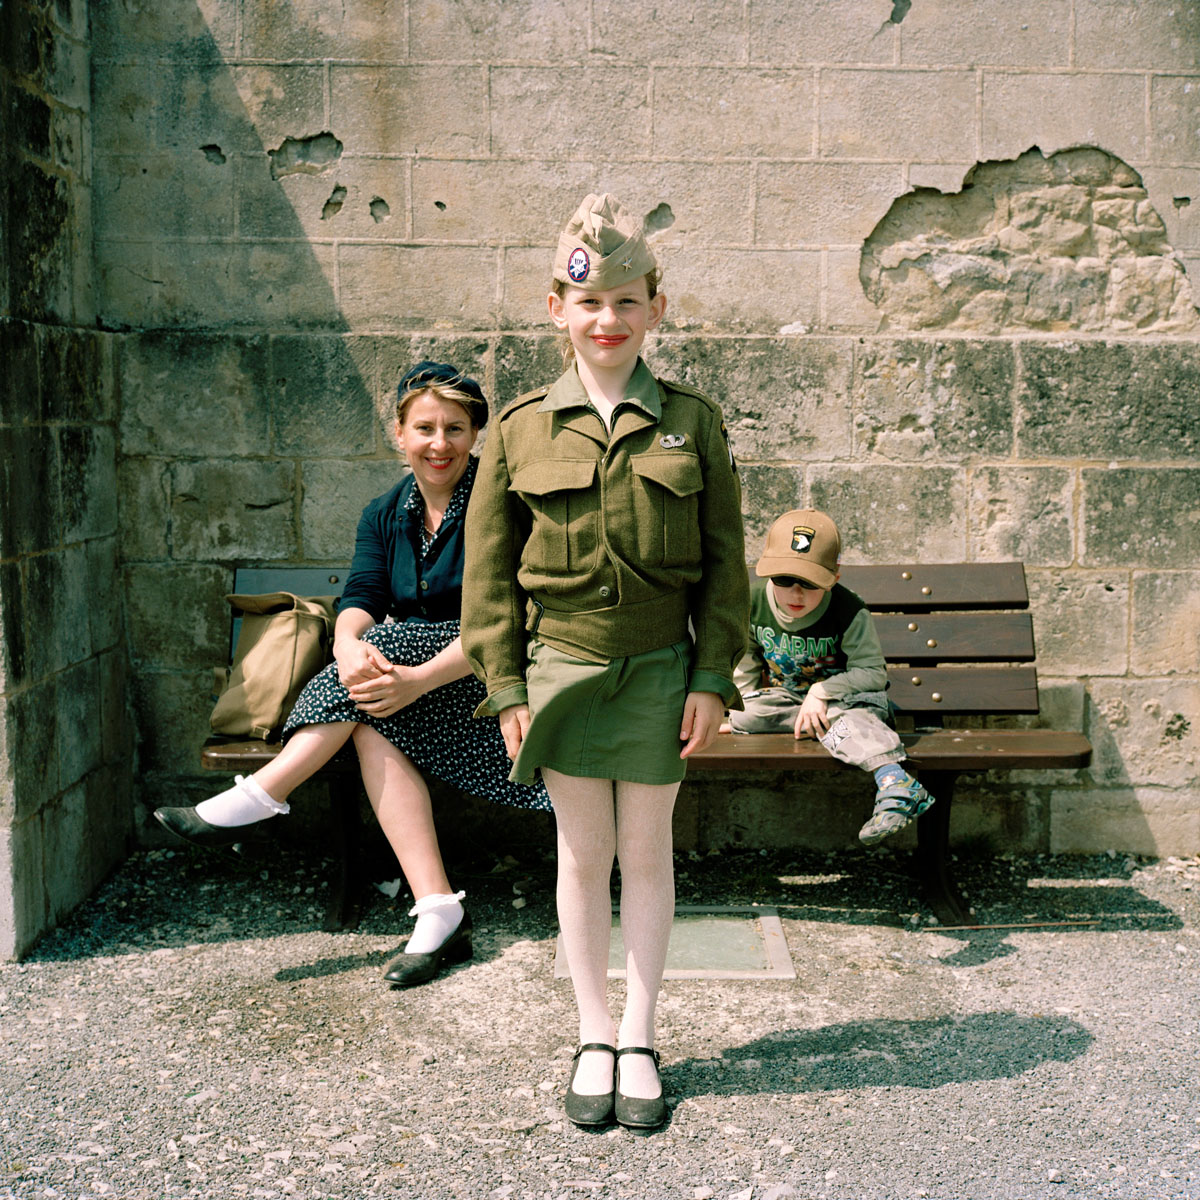 Frankrijk, Sainte-Mere-Eglise, 07-06-2013 Girl in Army clotches on the market. PHOTO AND COPYRIGHT ROGER CREMERS